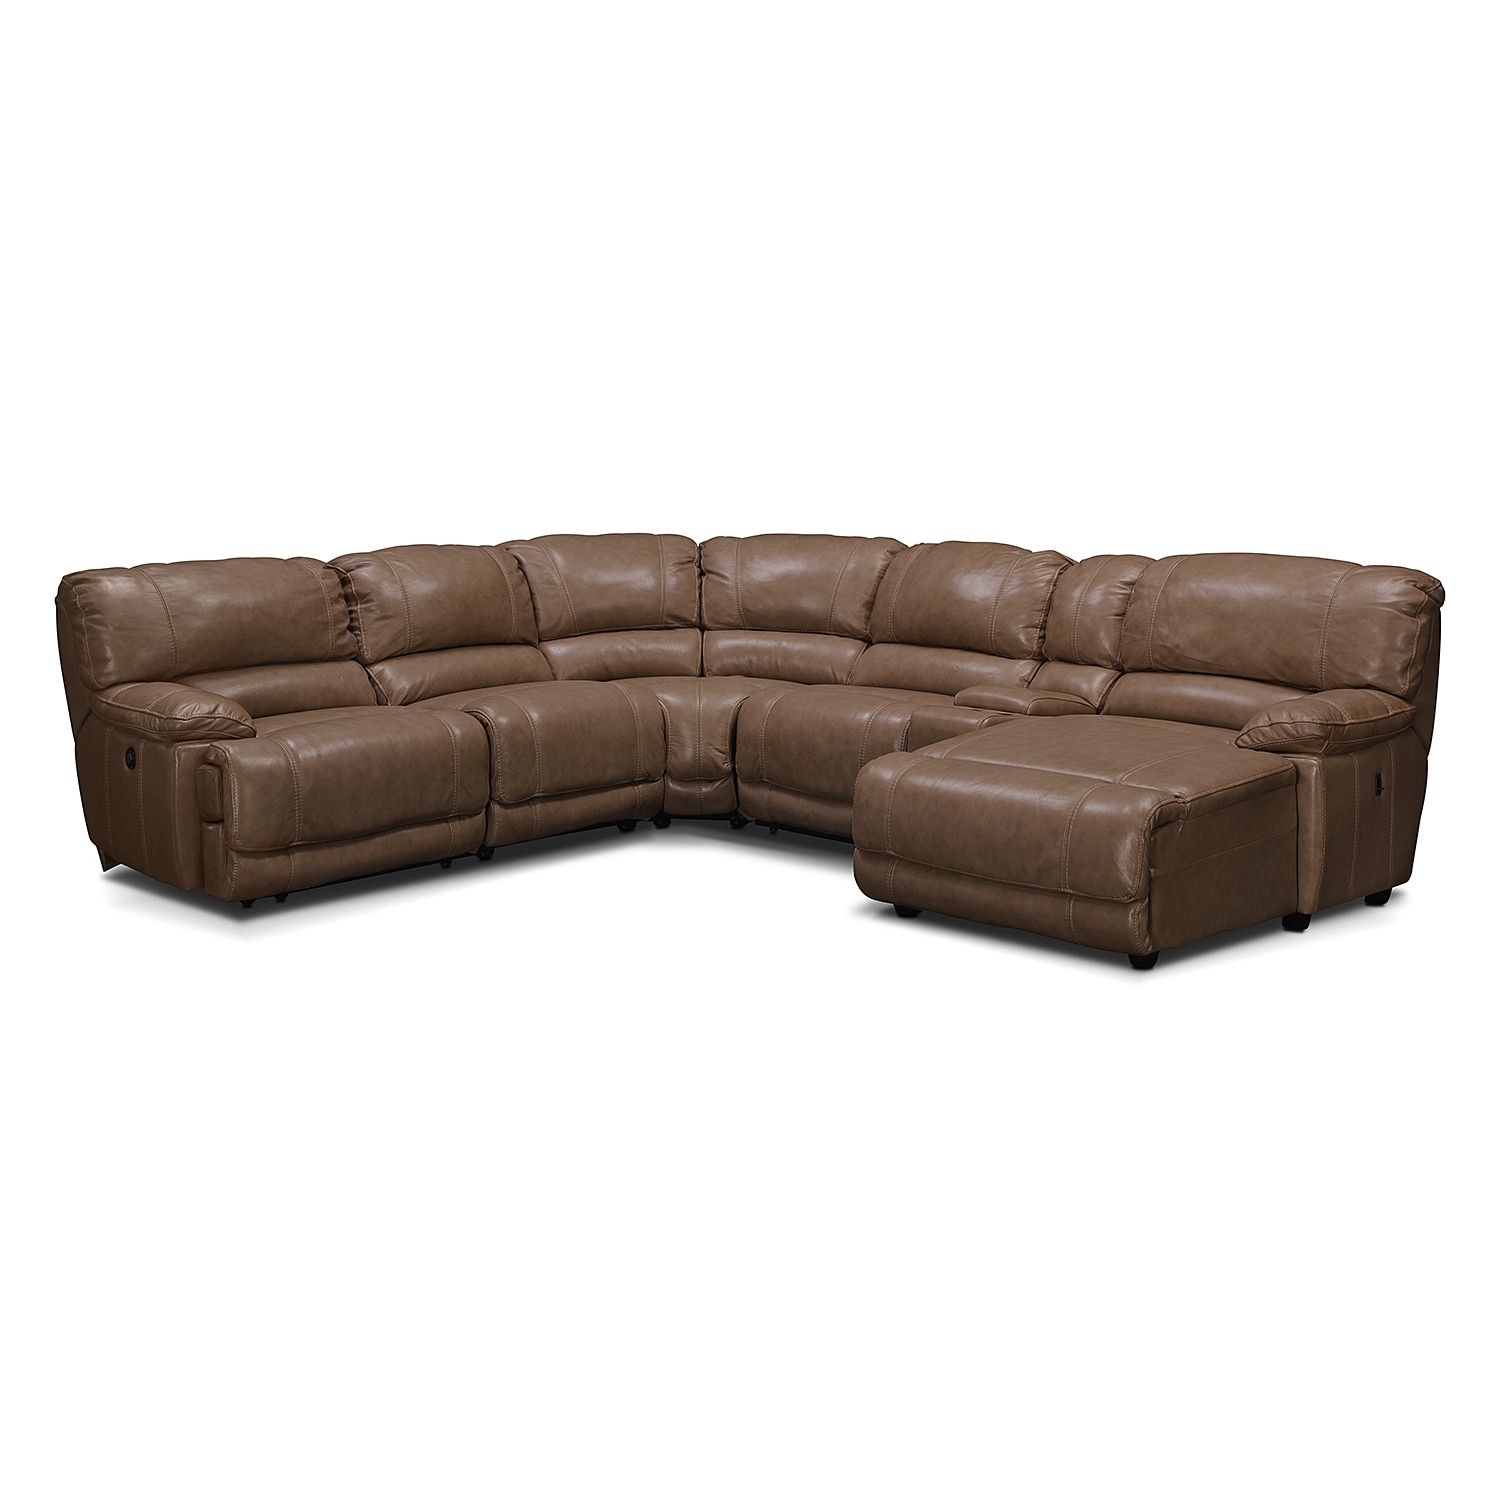 St malo 6 piece power reclining sectional with right for Brighton taupe 3 piece chaise and sofa set